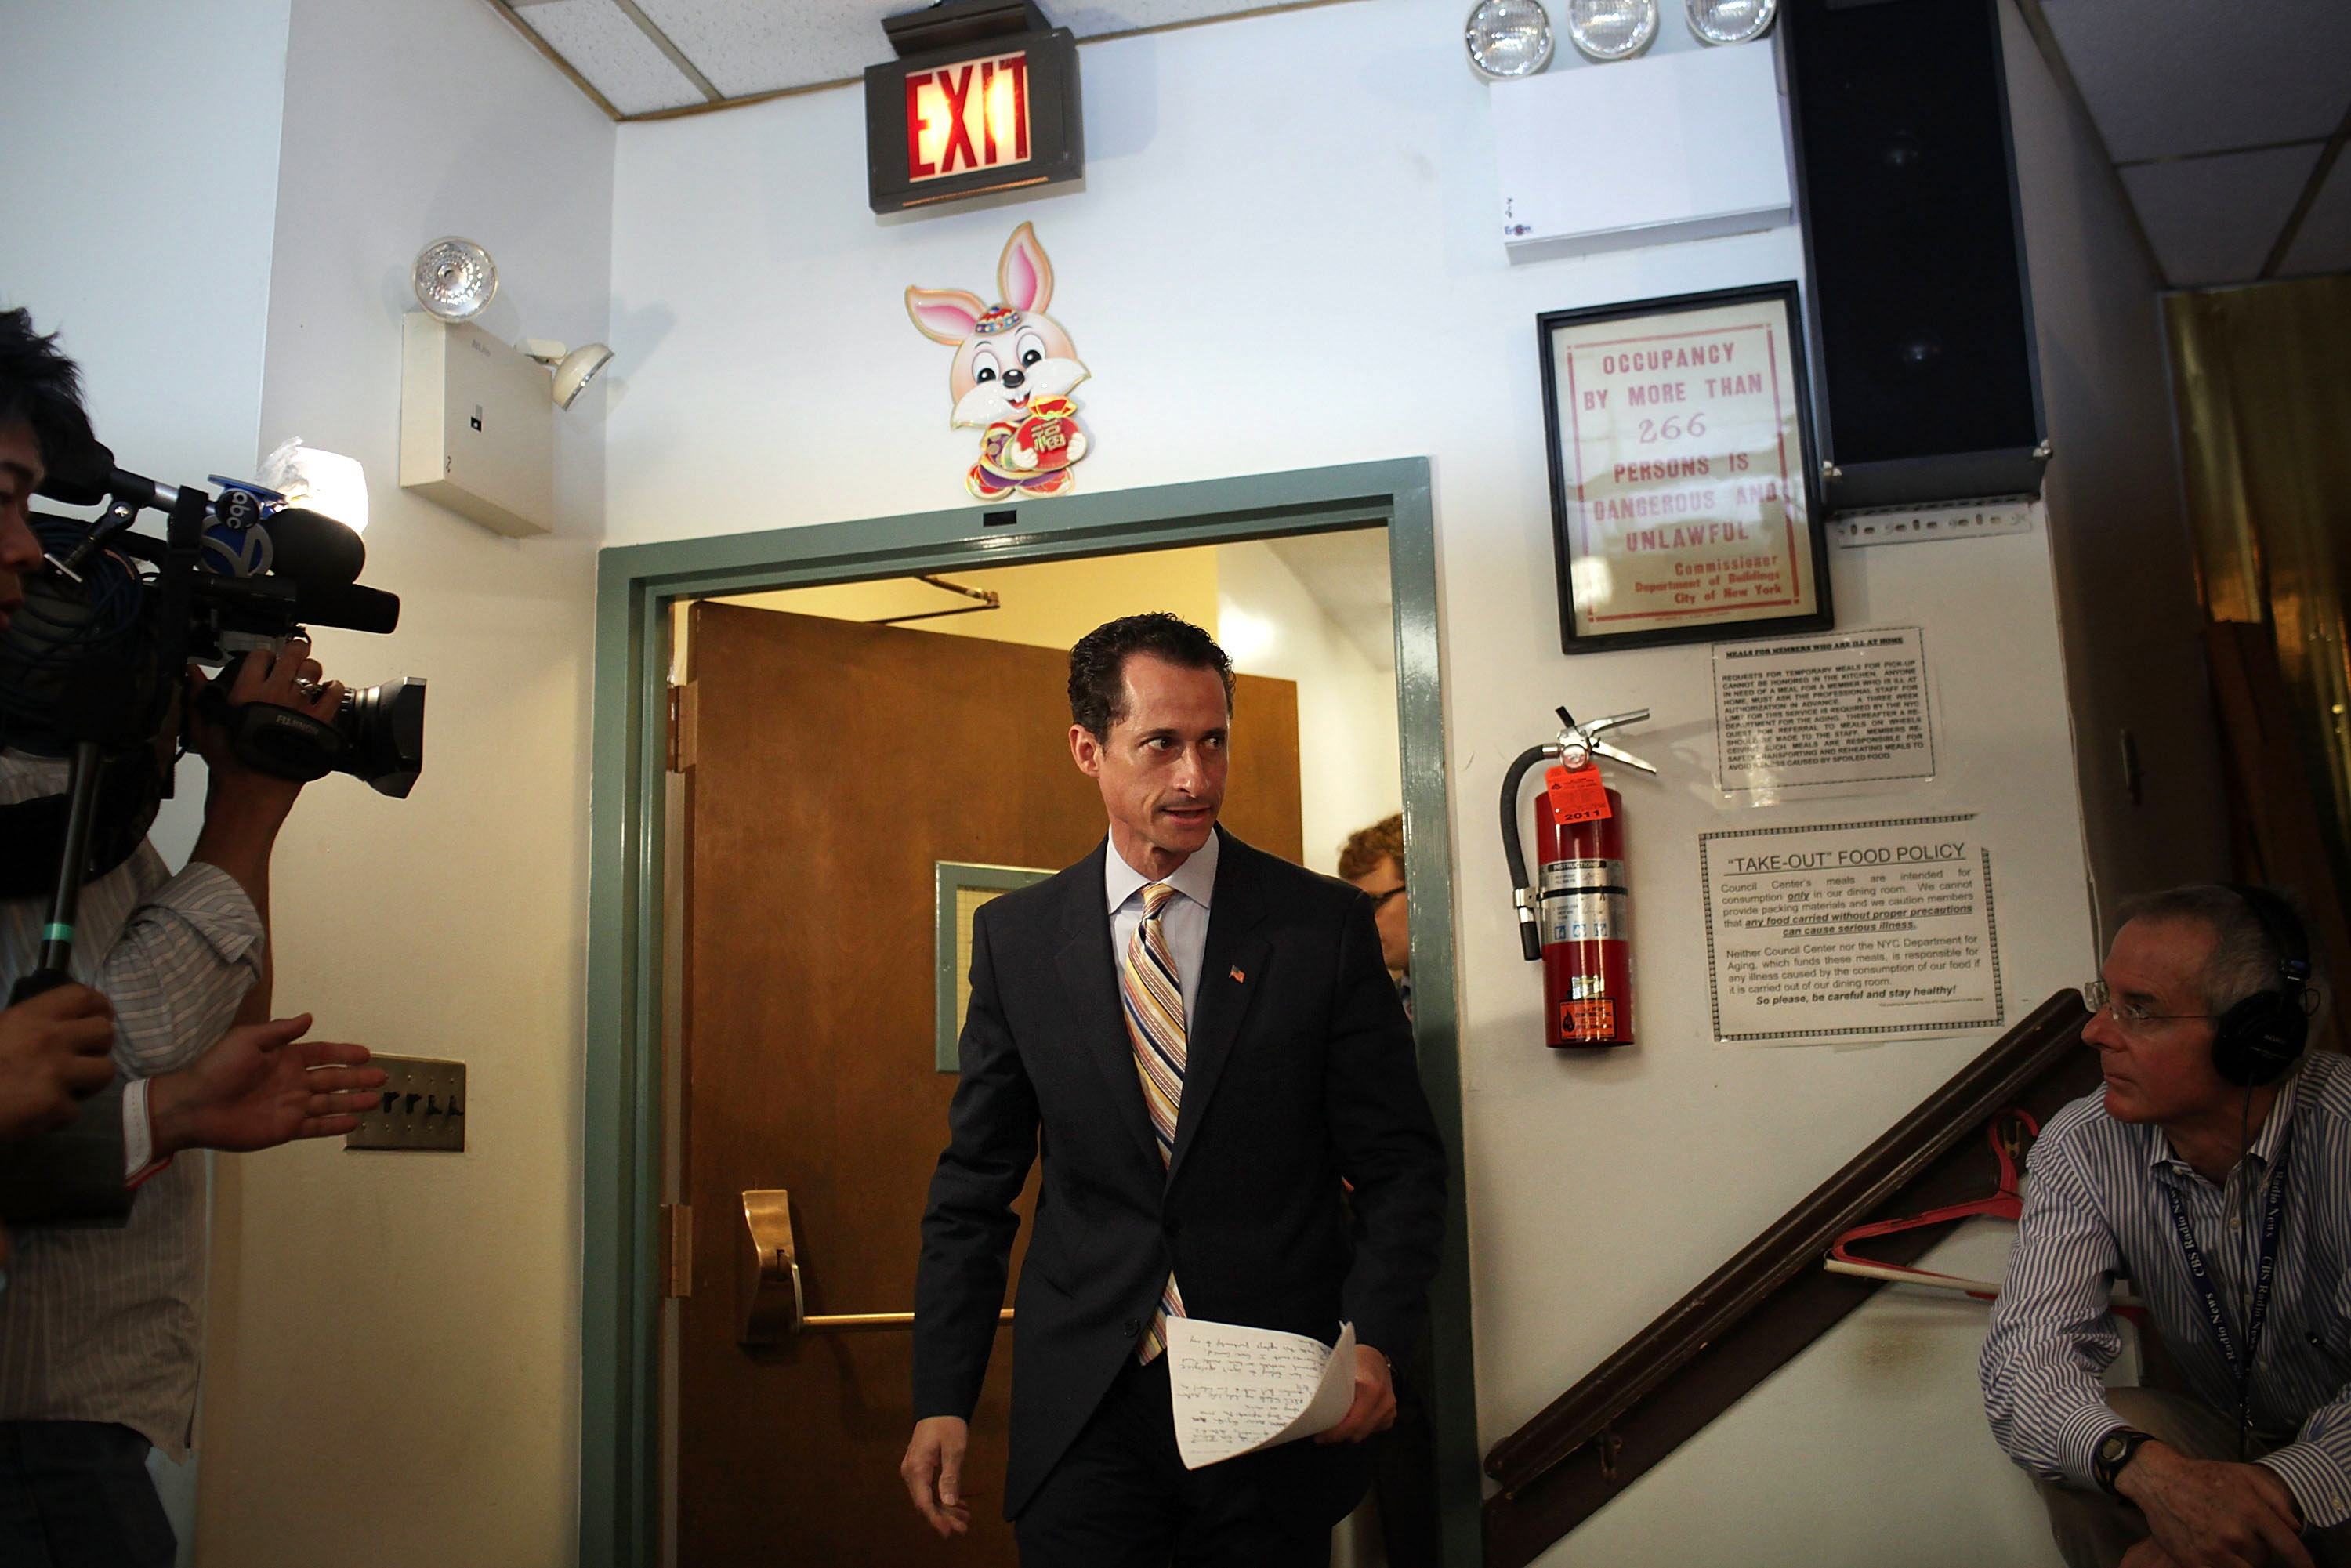 June 16, 2011. Rep. Anthony Weiner (D-NY) arrives to announce his resignation in the Brooklyn borough of New York City. The resignation came 10 days after the congressman admitted to sending lewd photos of himself on Twitter.